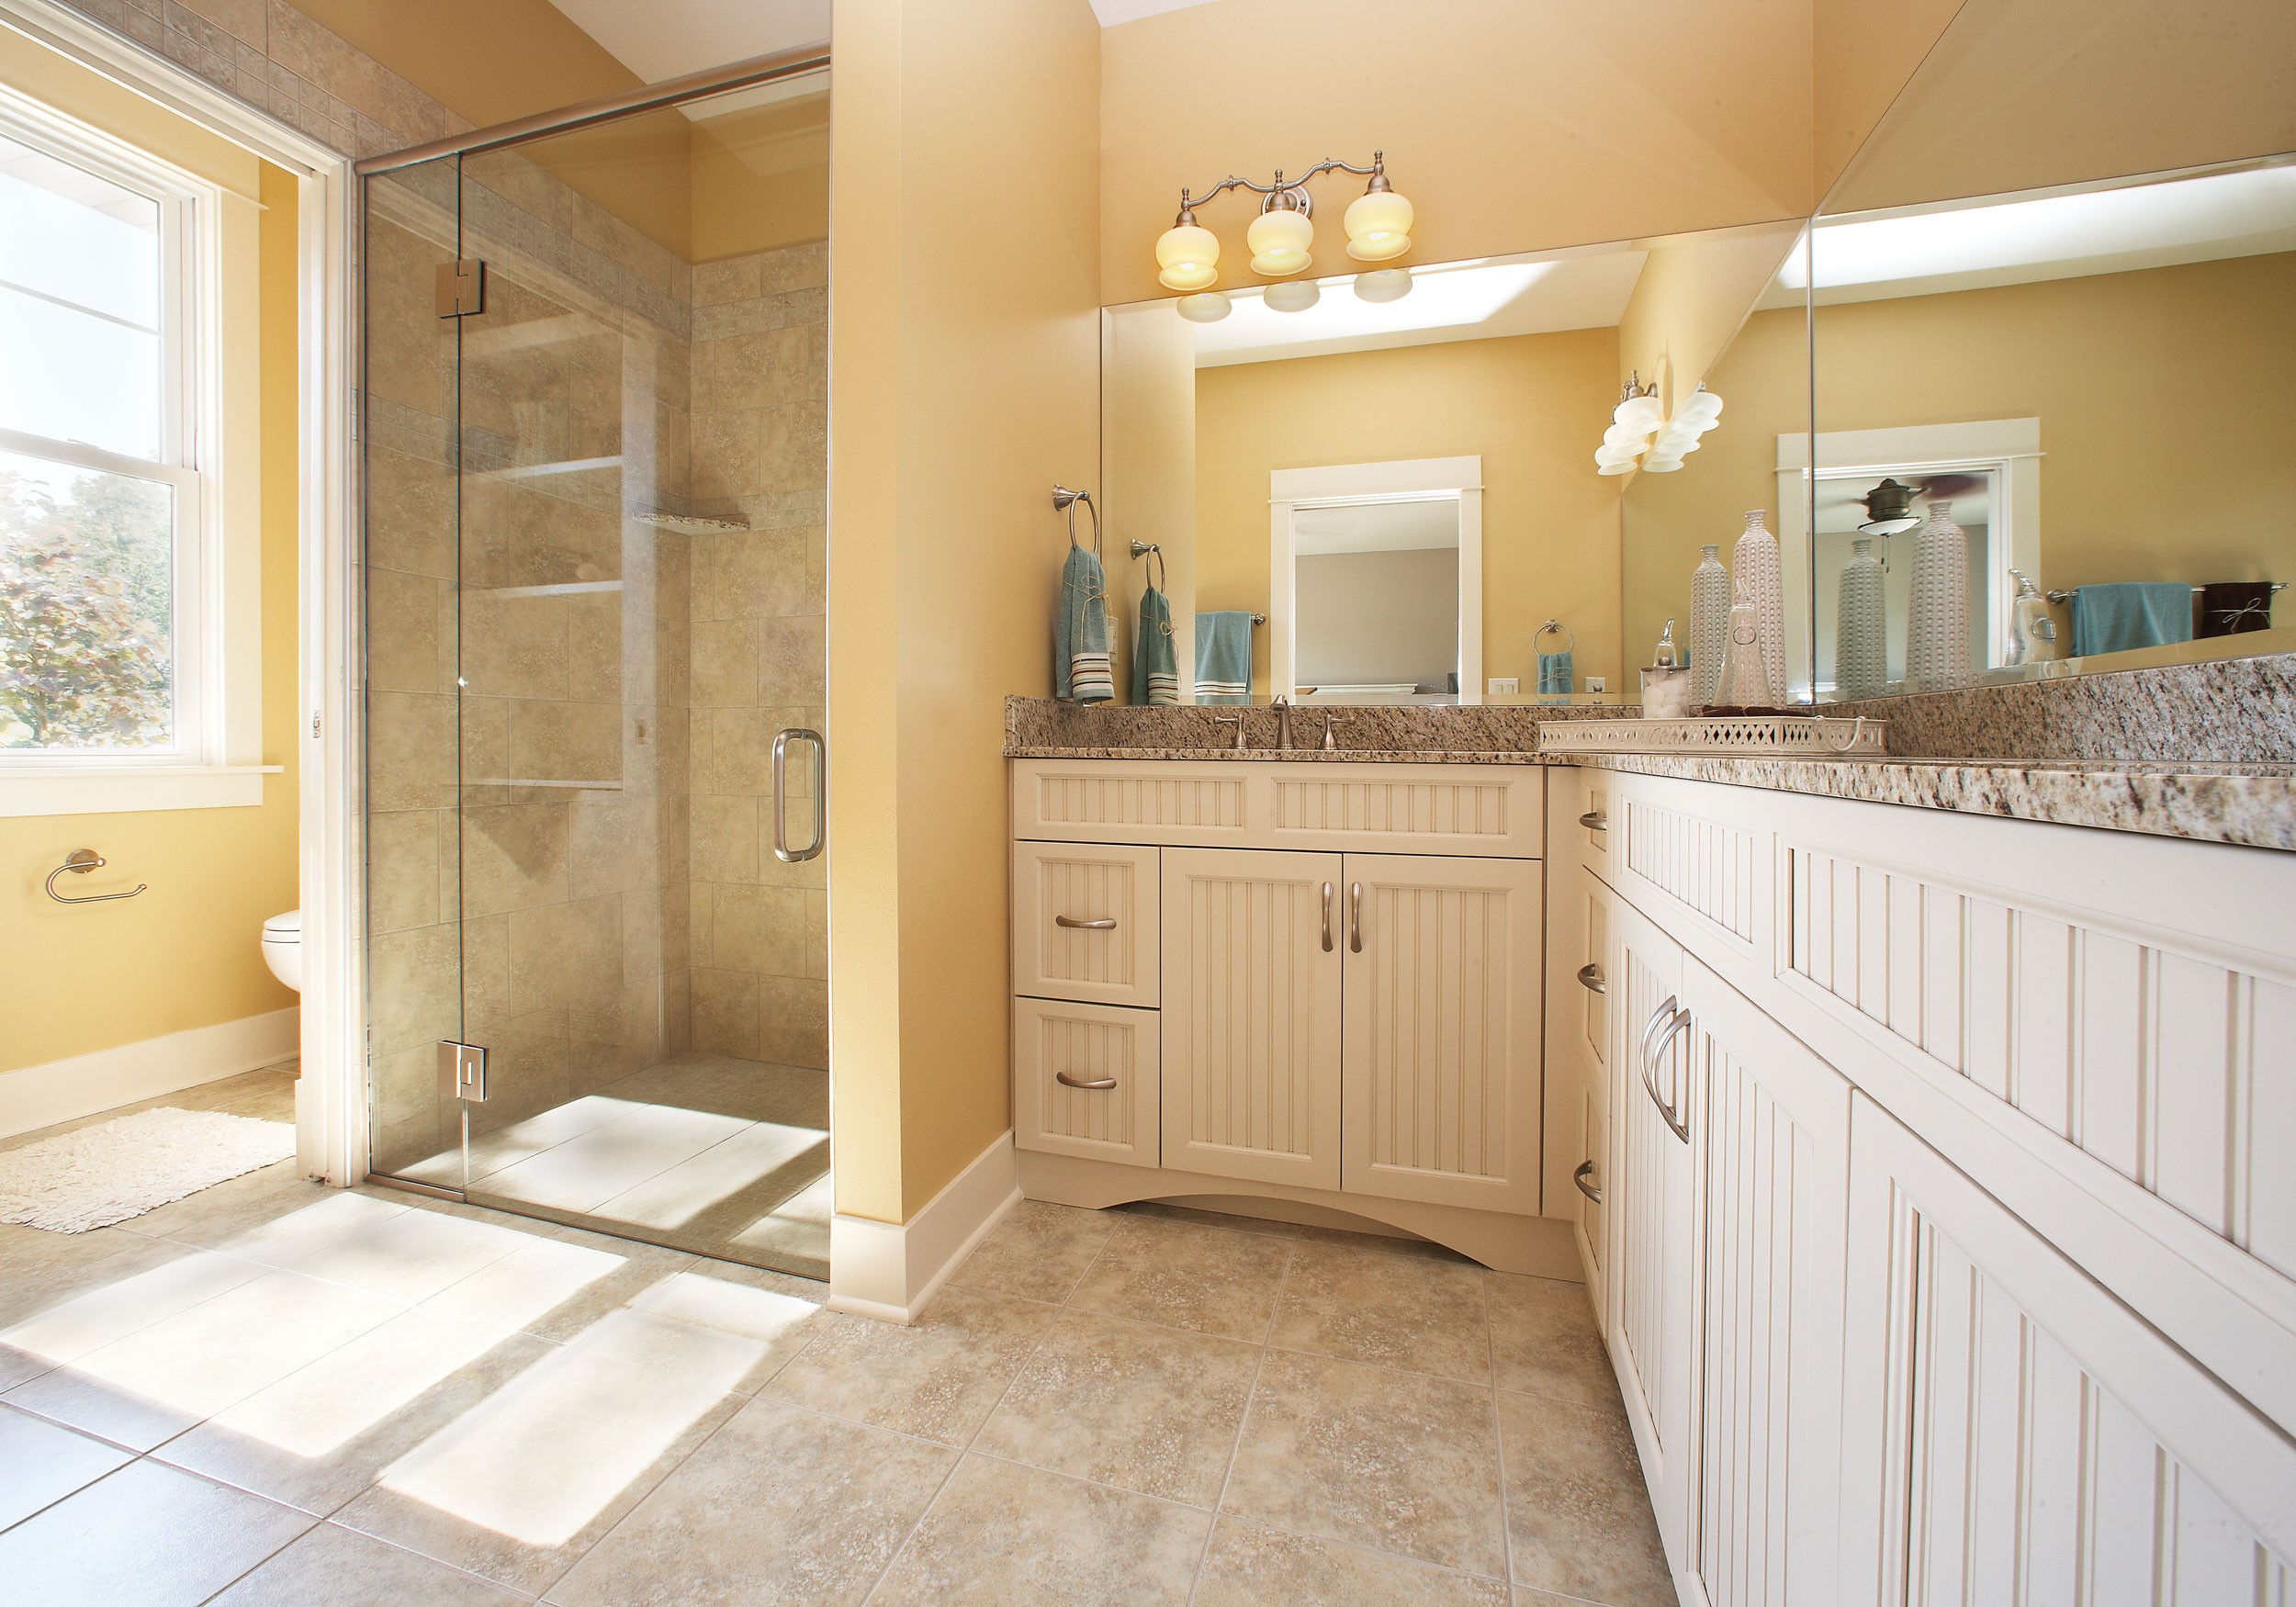 Custom Bathroom Vanities Phoenix custom kitchen & bathroom cabinets company in phoenix, az